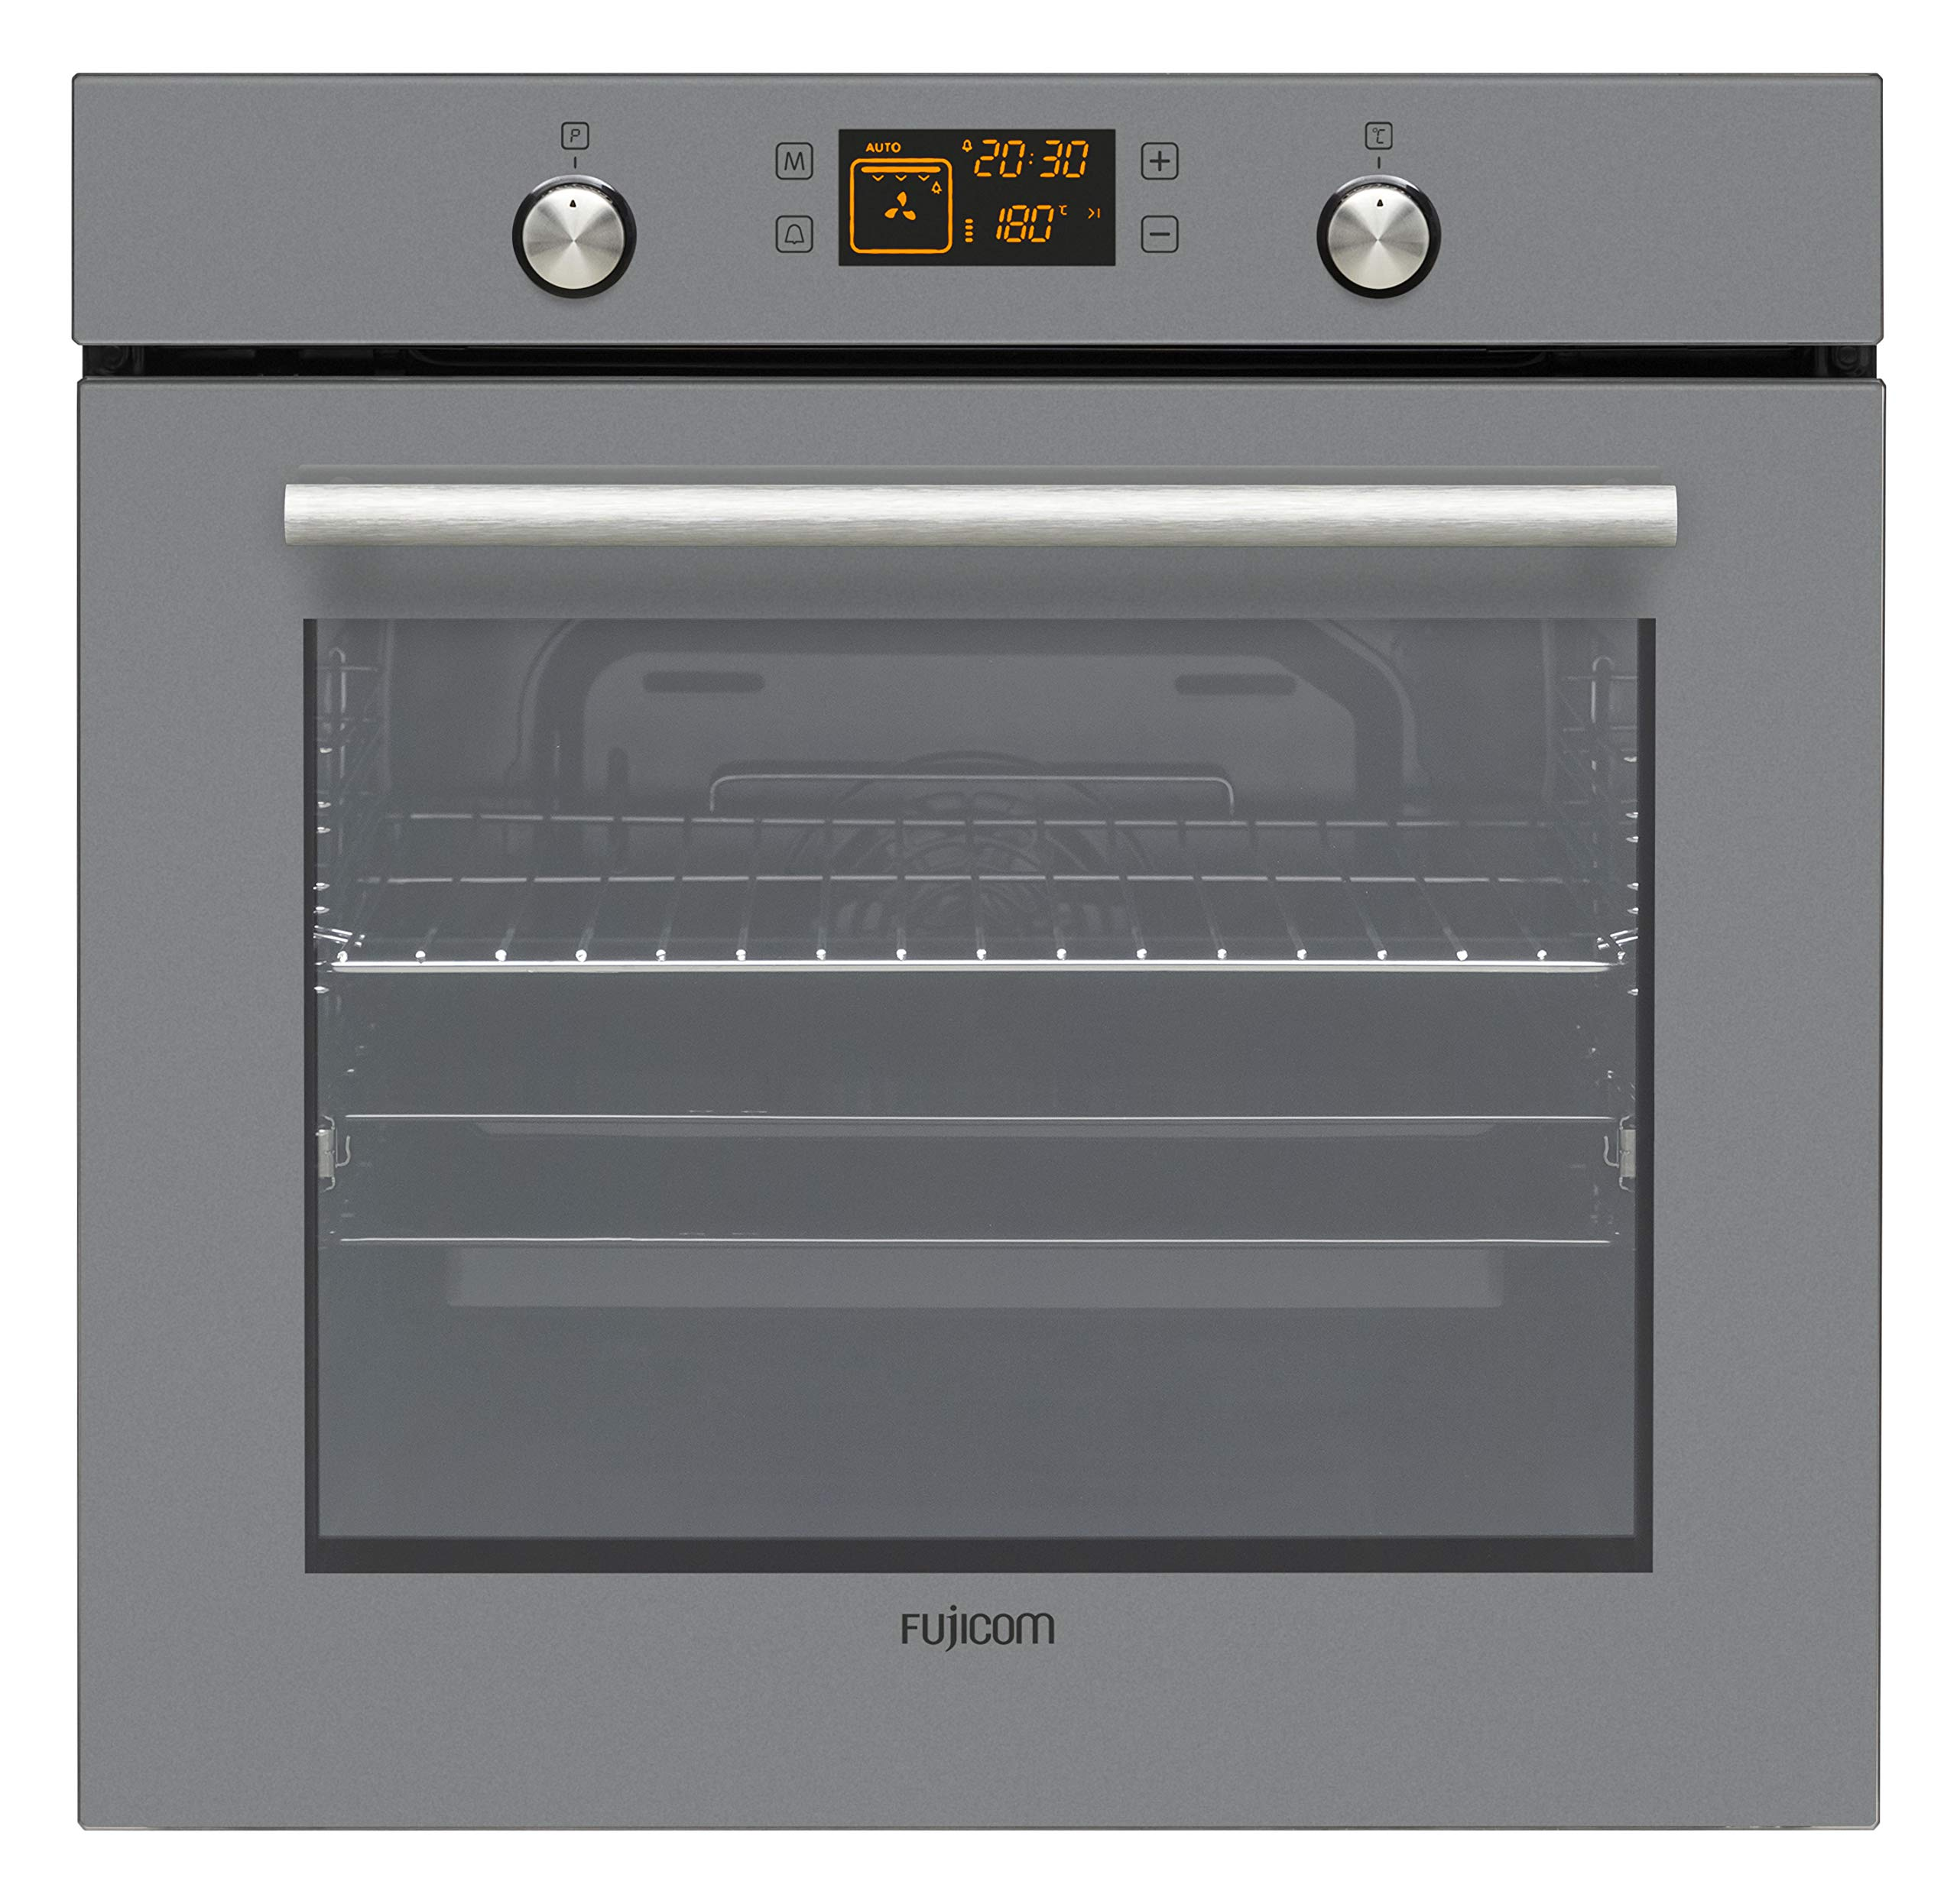 FUJICOM 75-L Built-in Oven - 9 Programs Including Active Turbo - Perfect for Cooking Baking & Grilling - Smooth Enamel Coating - Pop-Out Power Buttons for Easy Cleanup - A Energy Rated by FUJICOM